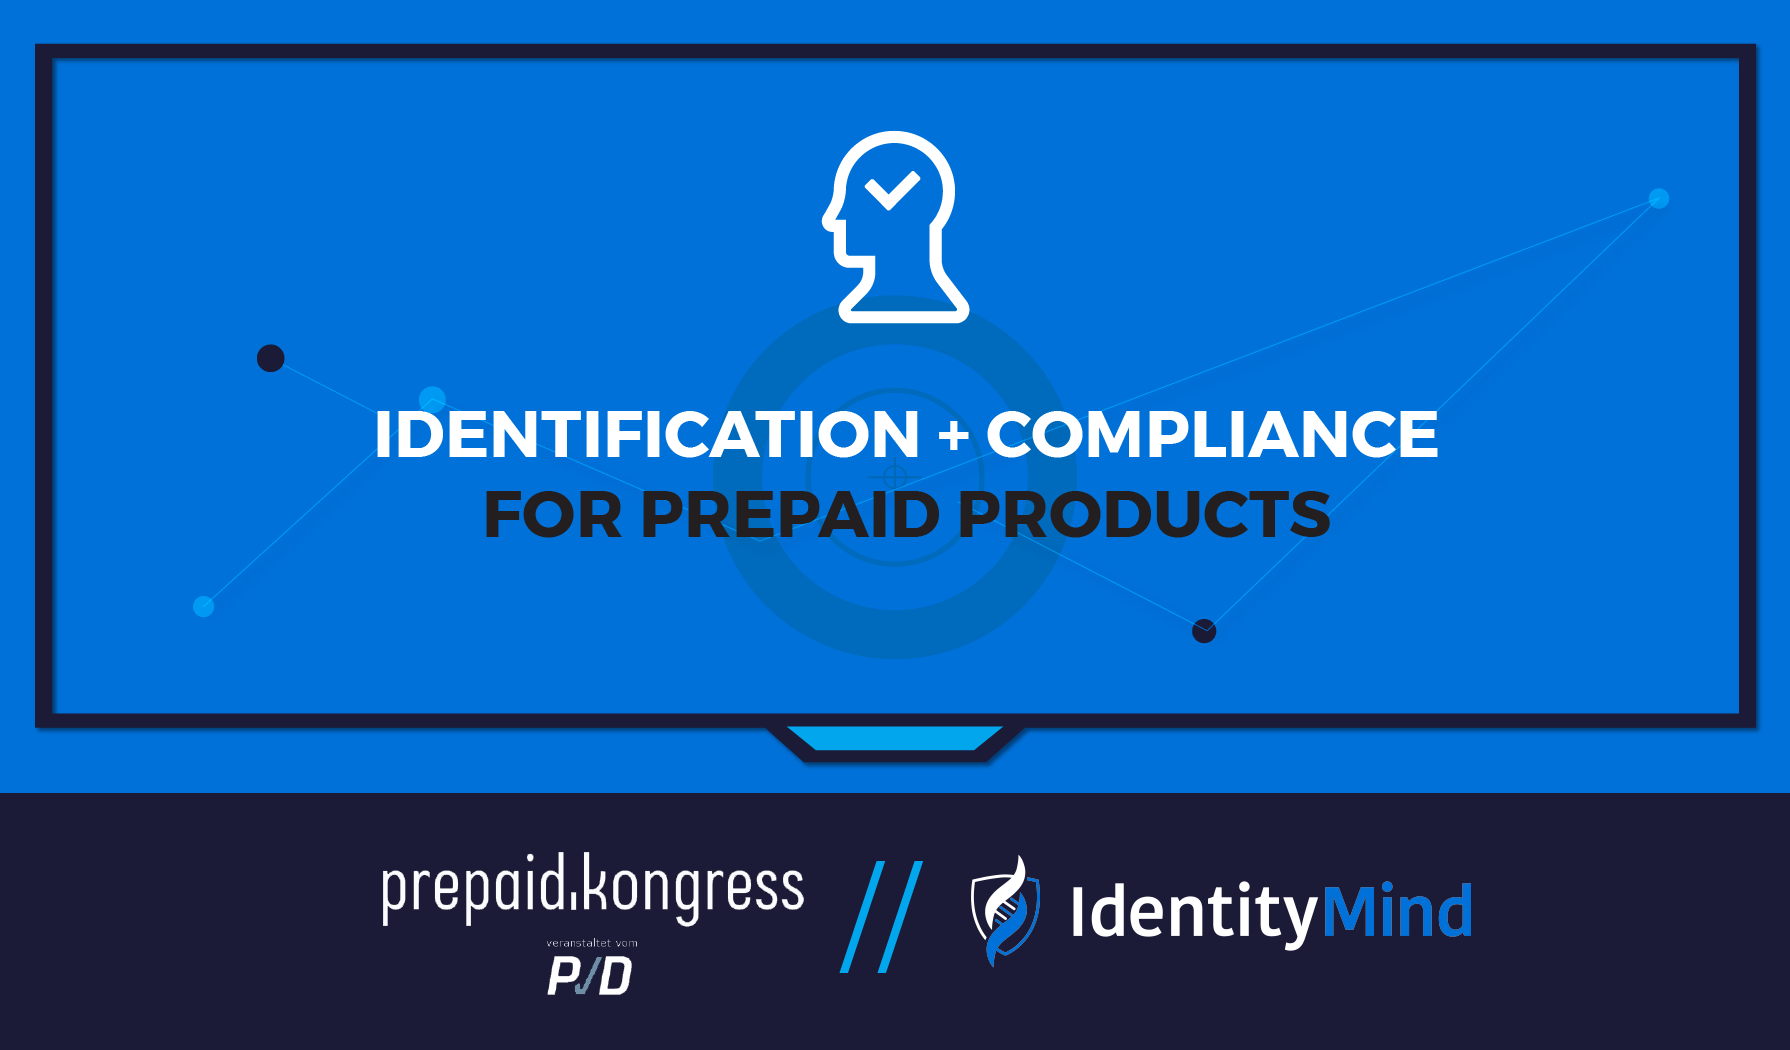 """IdentityMind to Speak on """"Identification and Compliance for Prepaid Products"""" at Prepaid Kongress, Berlin"""